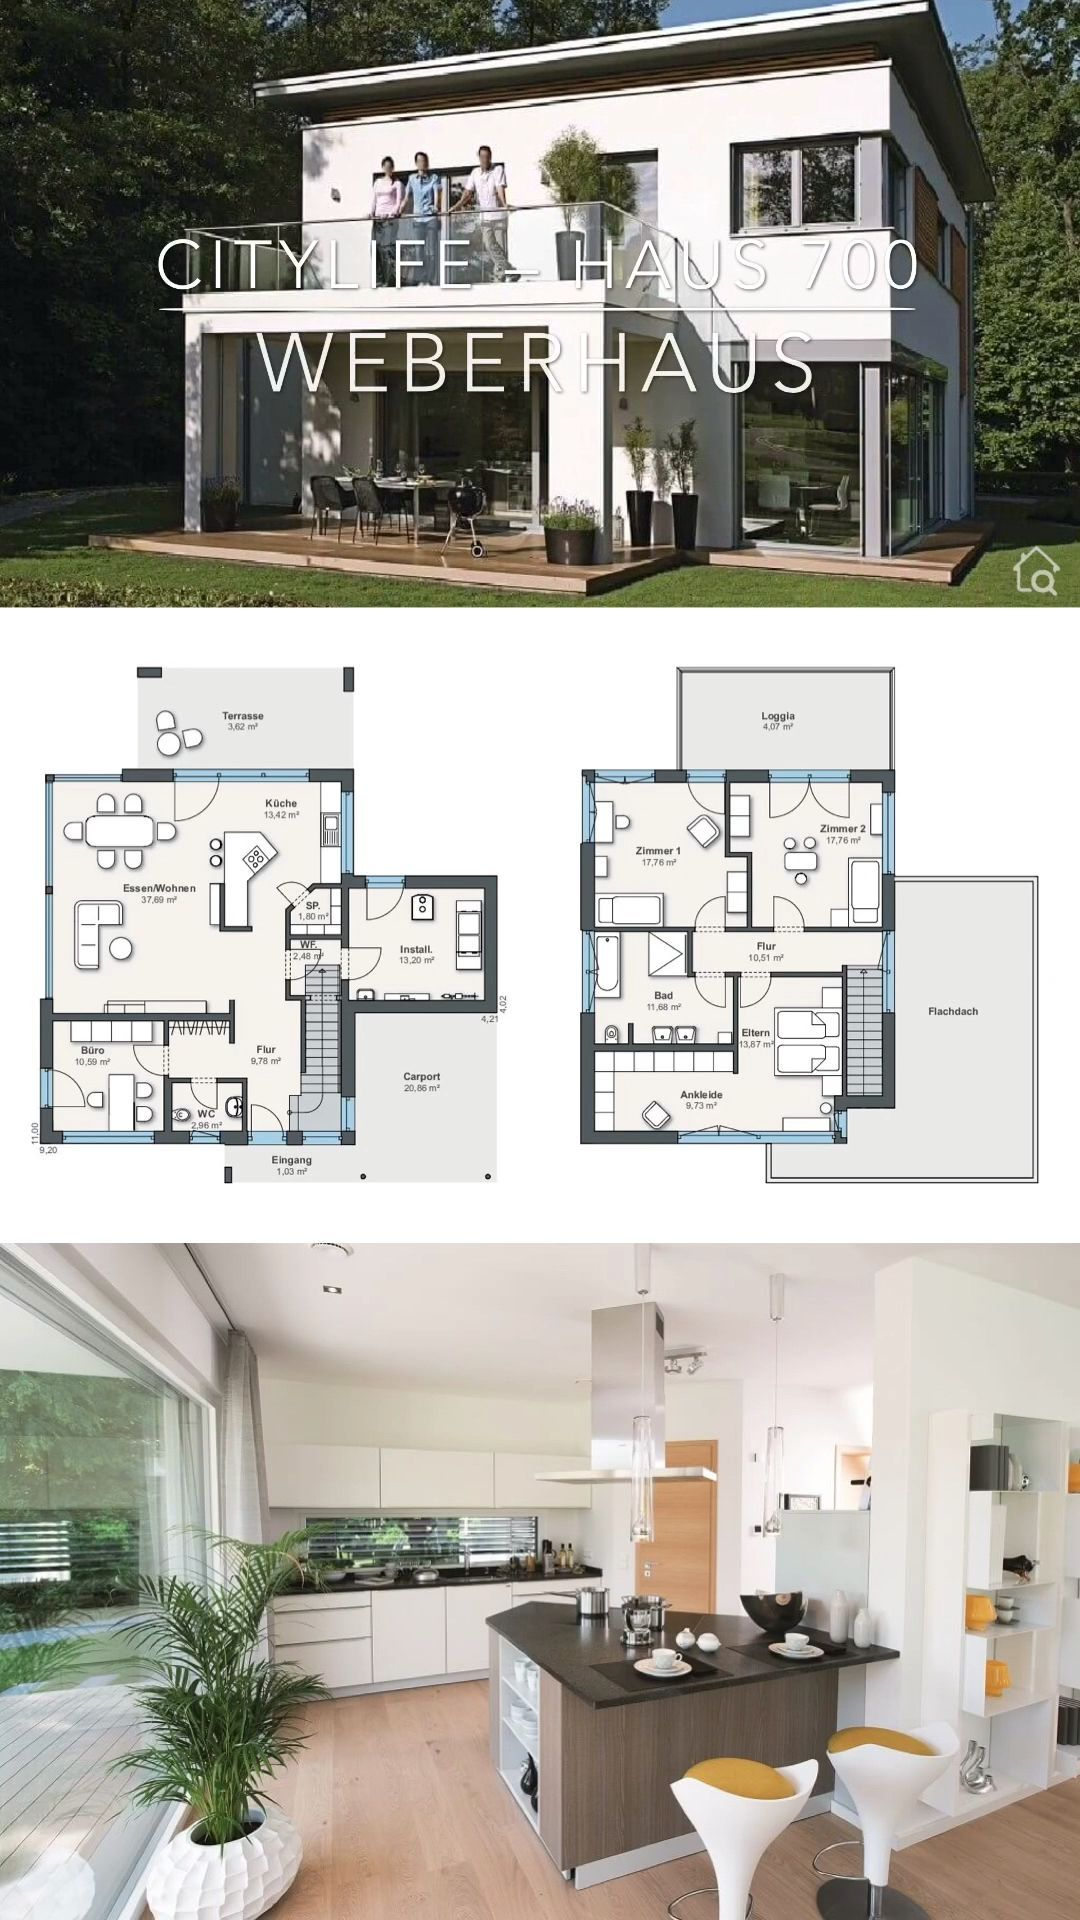 Detached House Villa 5 Room Prefabricated House In The Pent Roof House Ideas With Floor Plan Architectural House Plans Modern House Plans Modern Family House